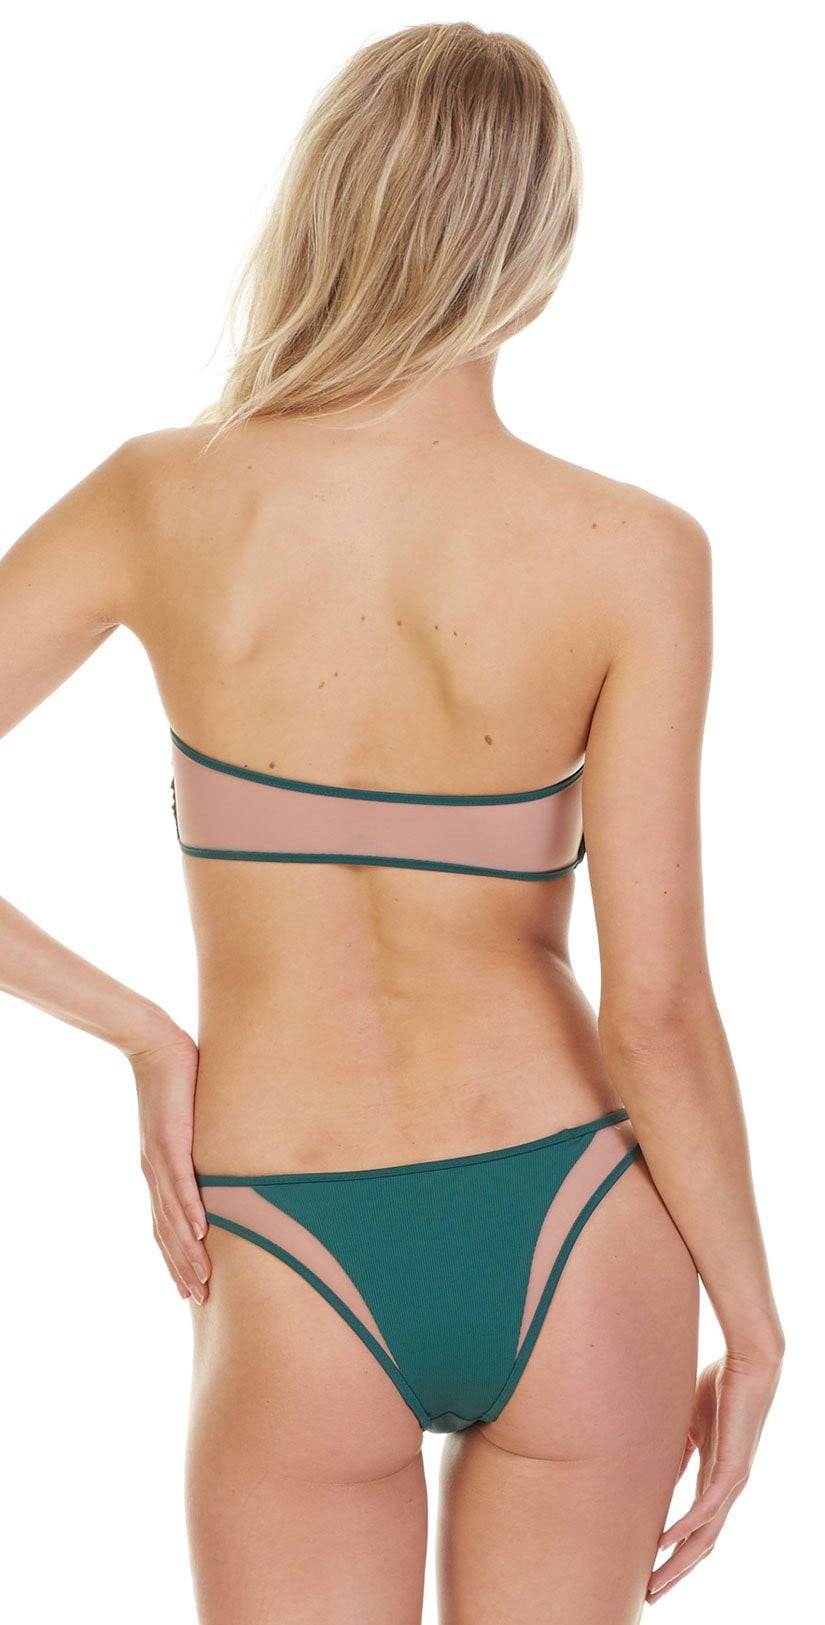 Tori Praver Fine Rib Royale Top In  Emerald 1S19STRONR-EMR back view of green bikini